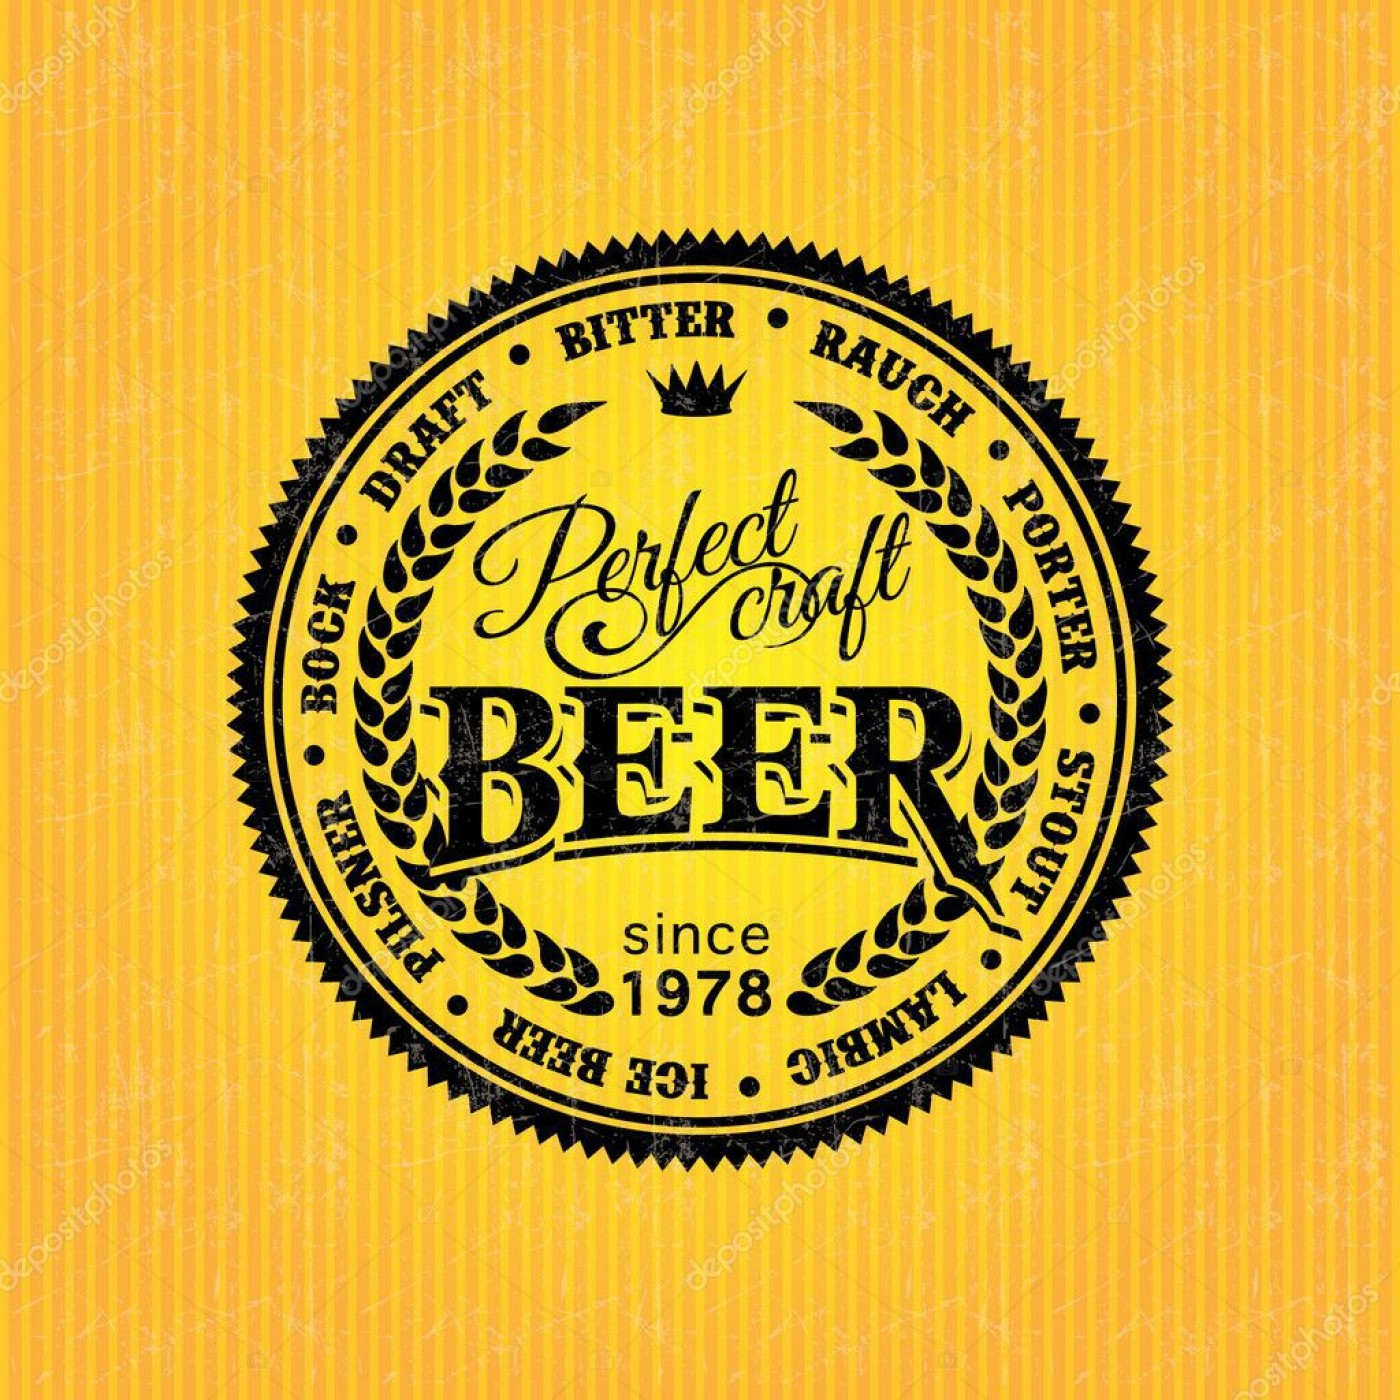 006 Dreaded Beer Label Design Template Image  Free1400